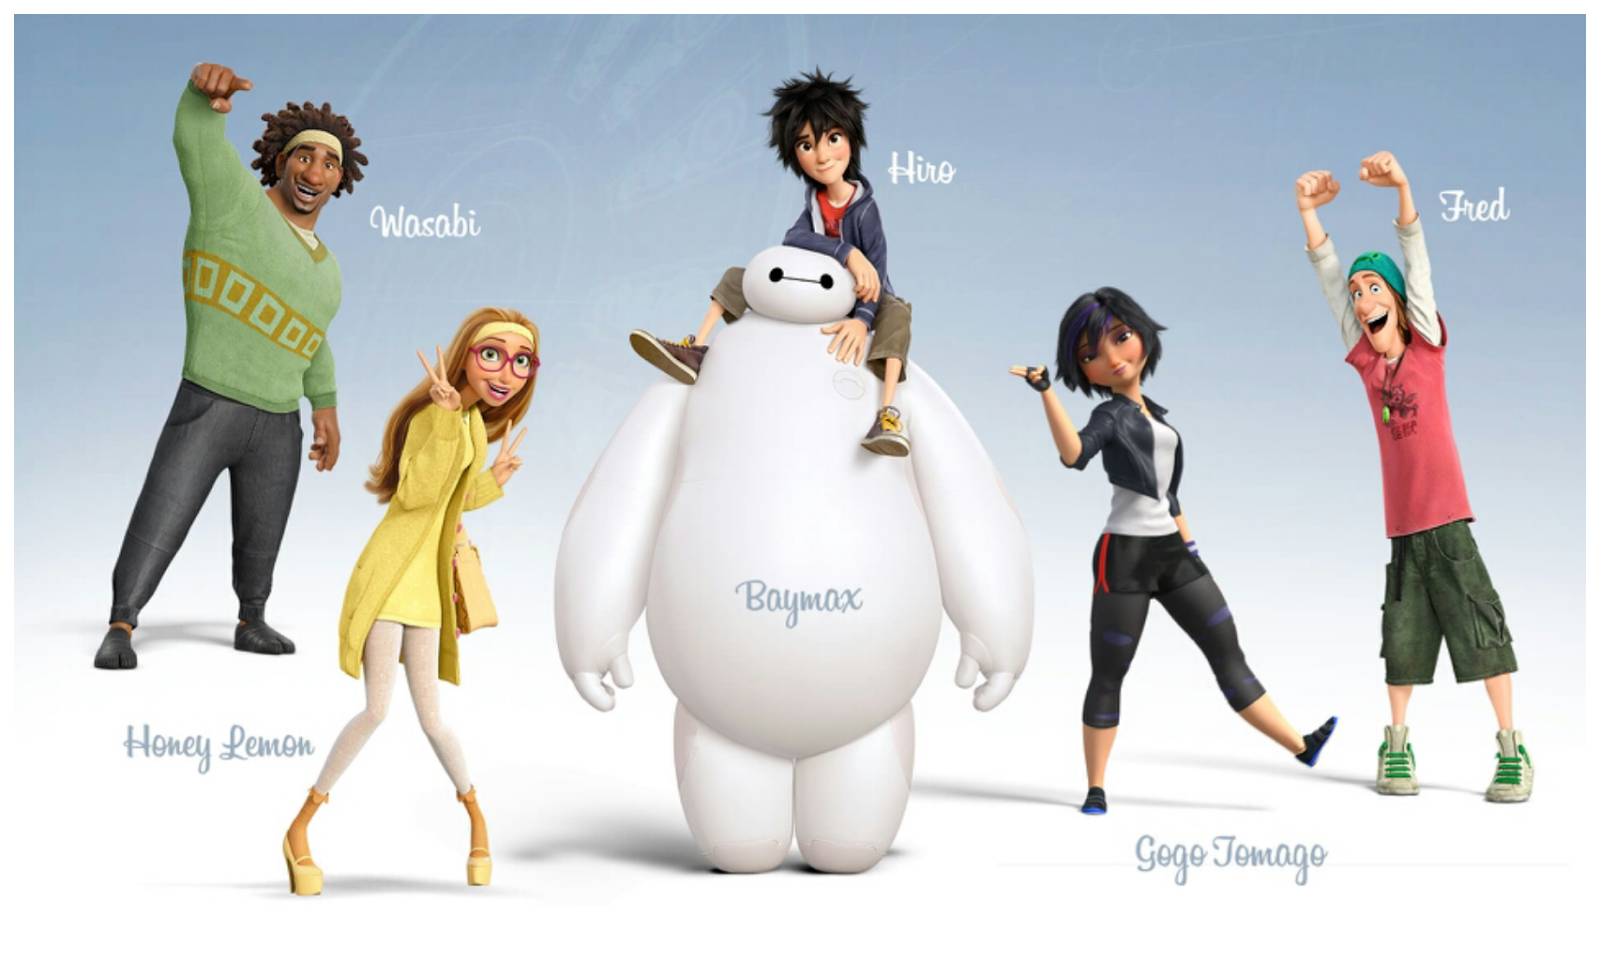 San Fransokyo Hiro Turns Into A Nearby Companion Robot Baymax And Transform The Group Of High Tech Hero Determined To Solve Mystery